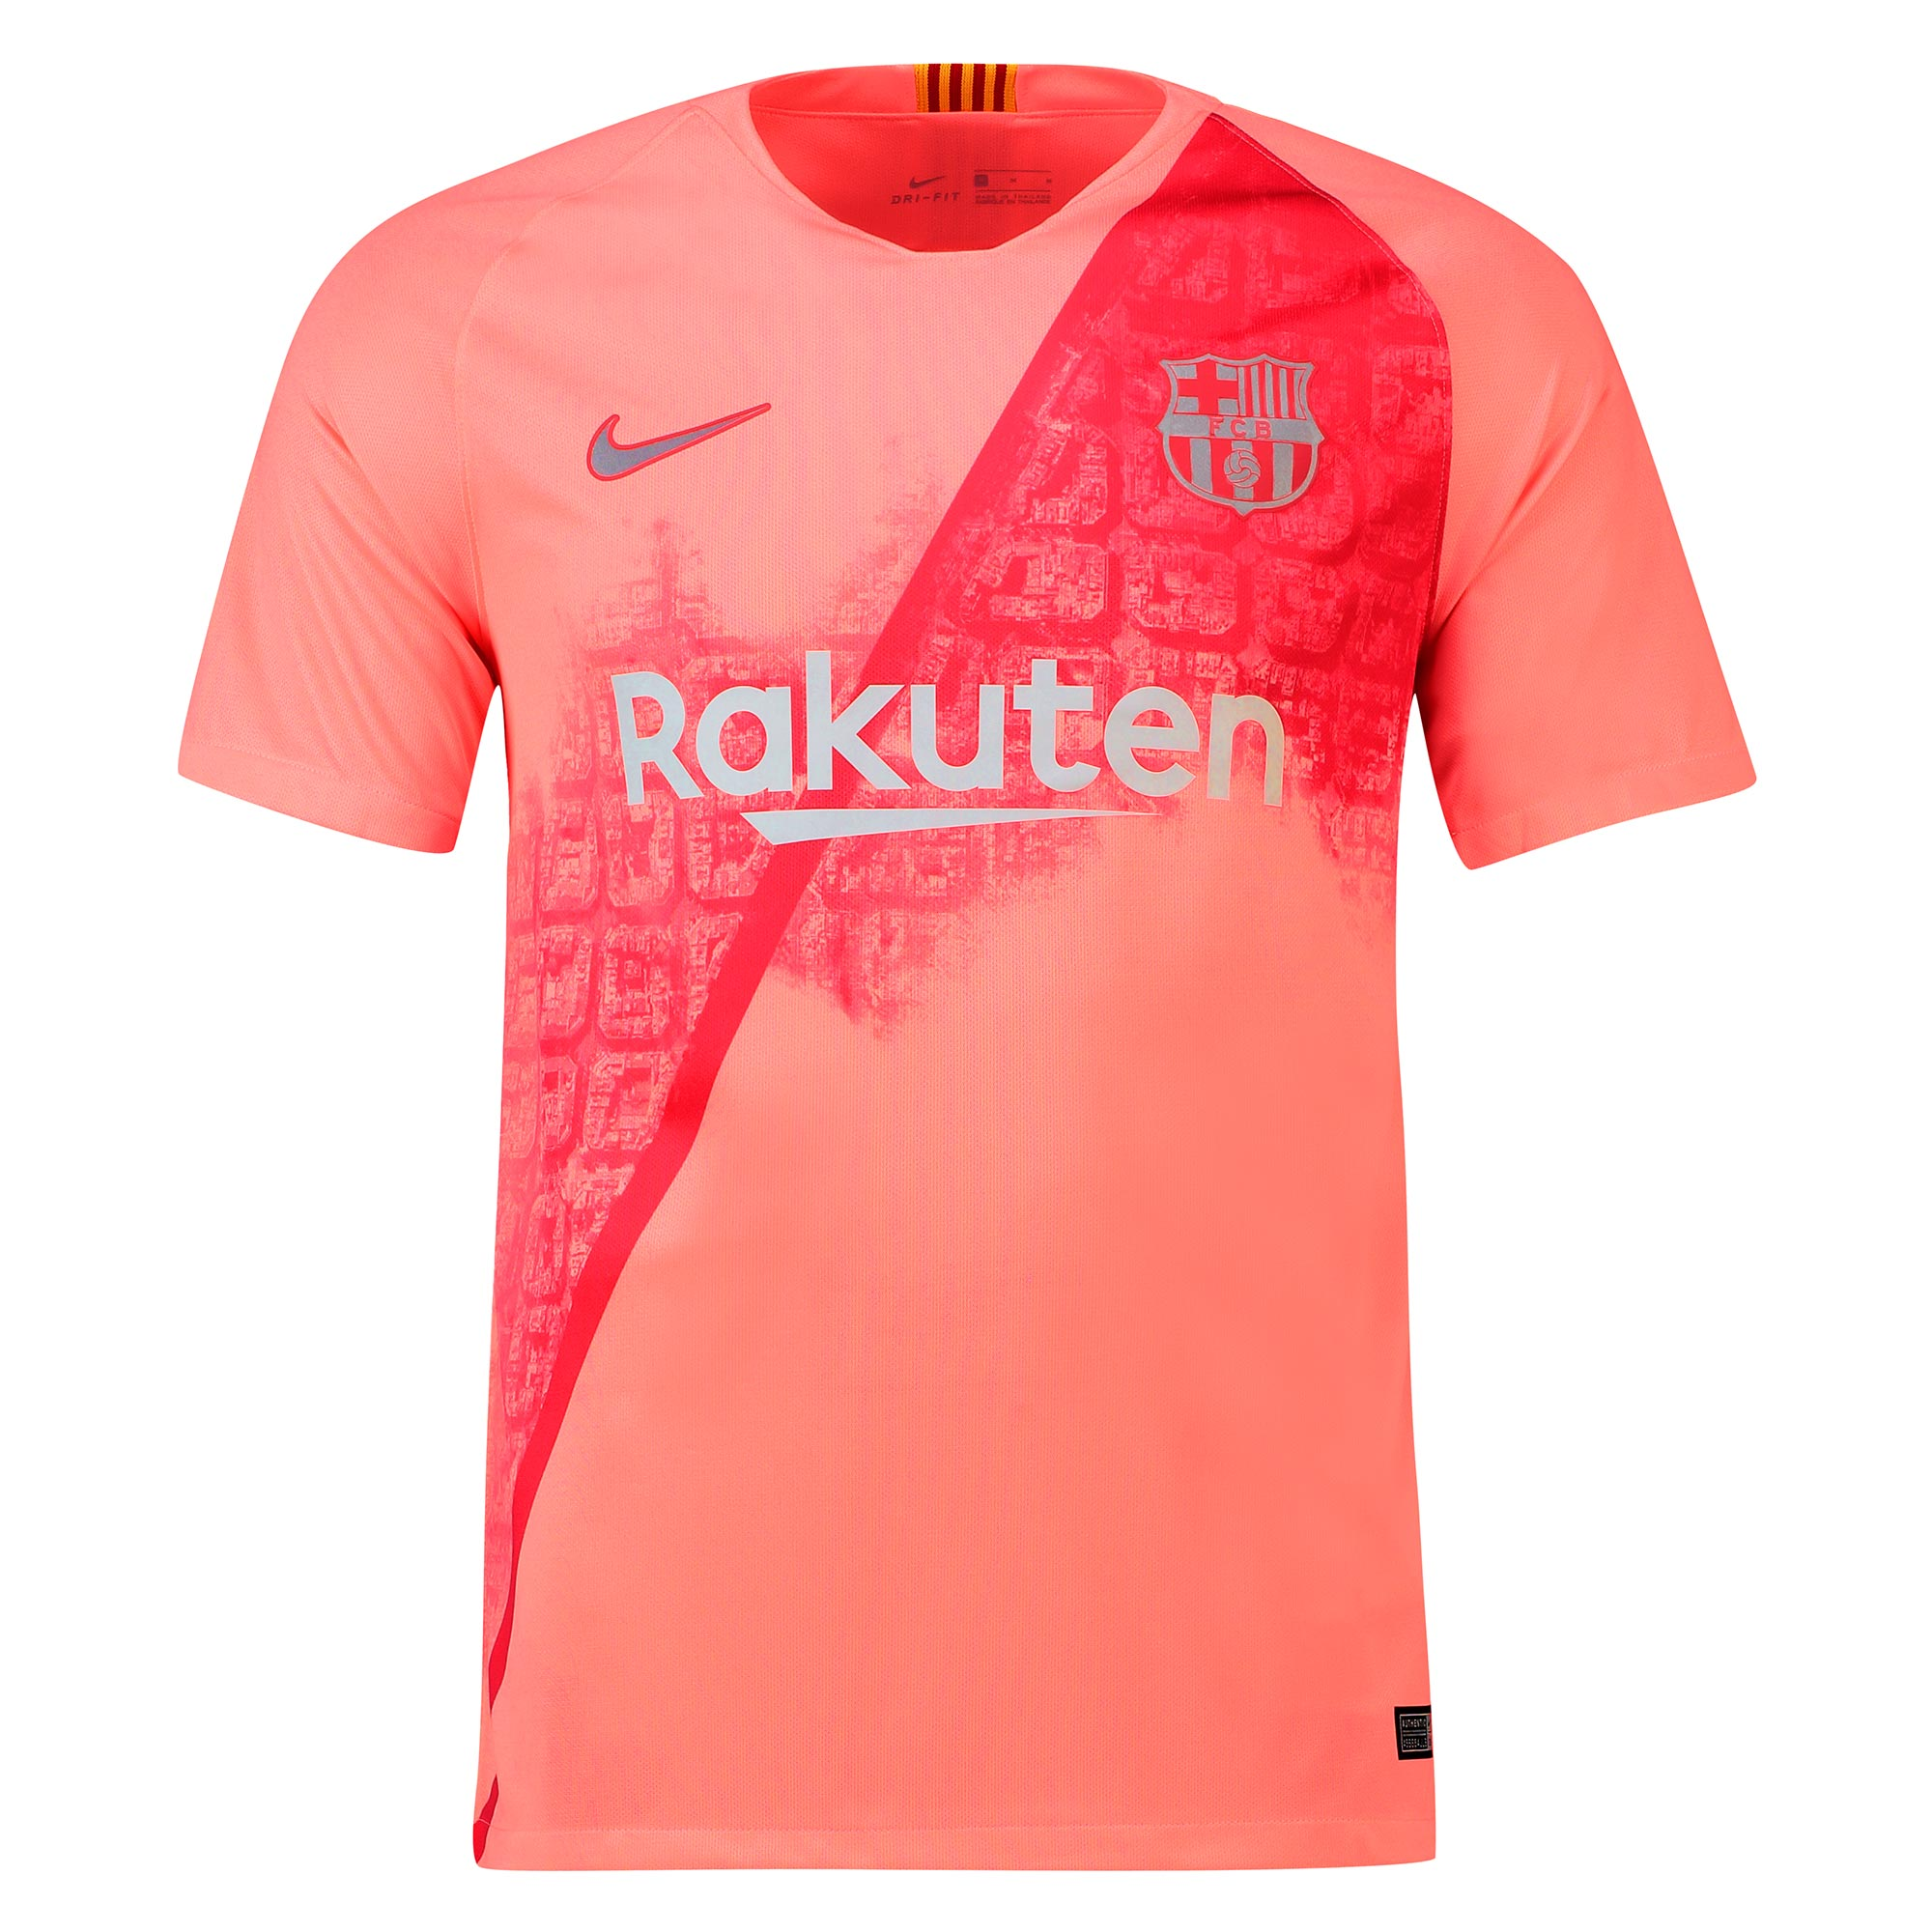 6a283da38 ... Click to enlarge image barcelona 18 19 nike third kit c.jpg ...